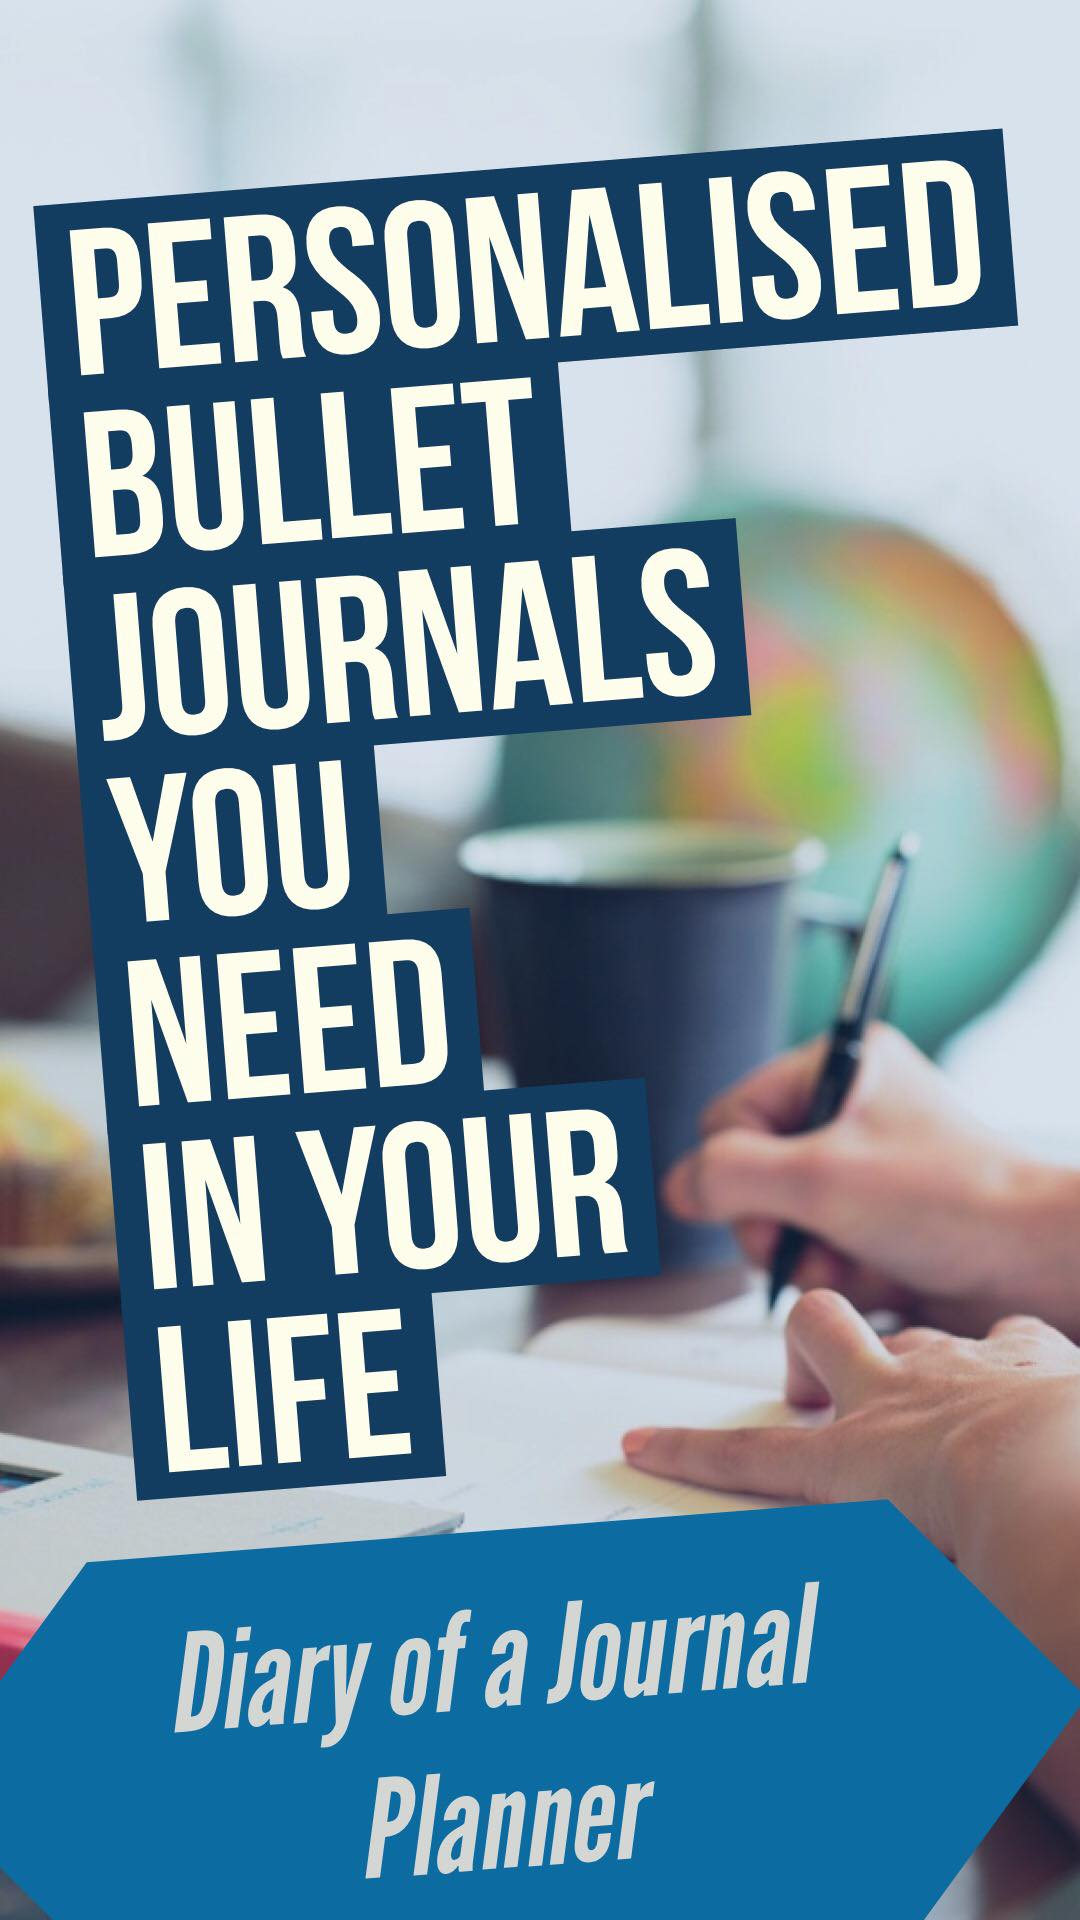 personalized bullet journal ideas and where to buy them